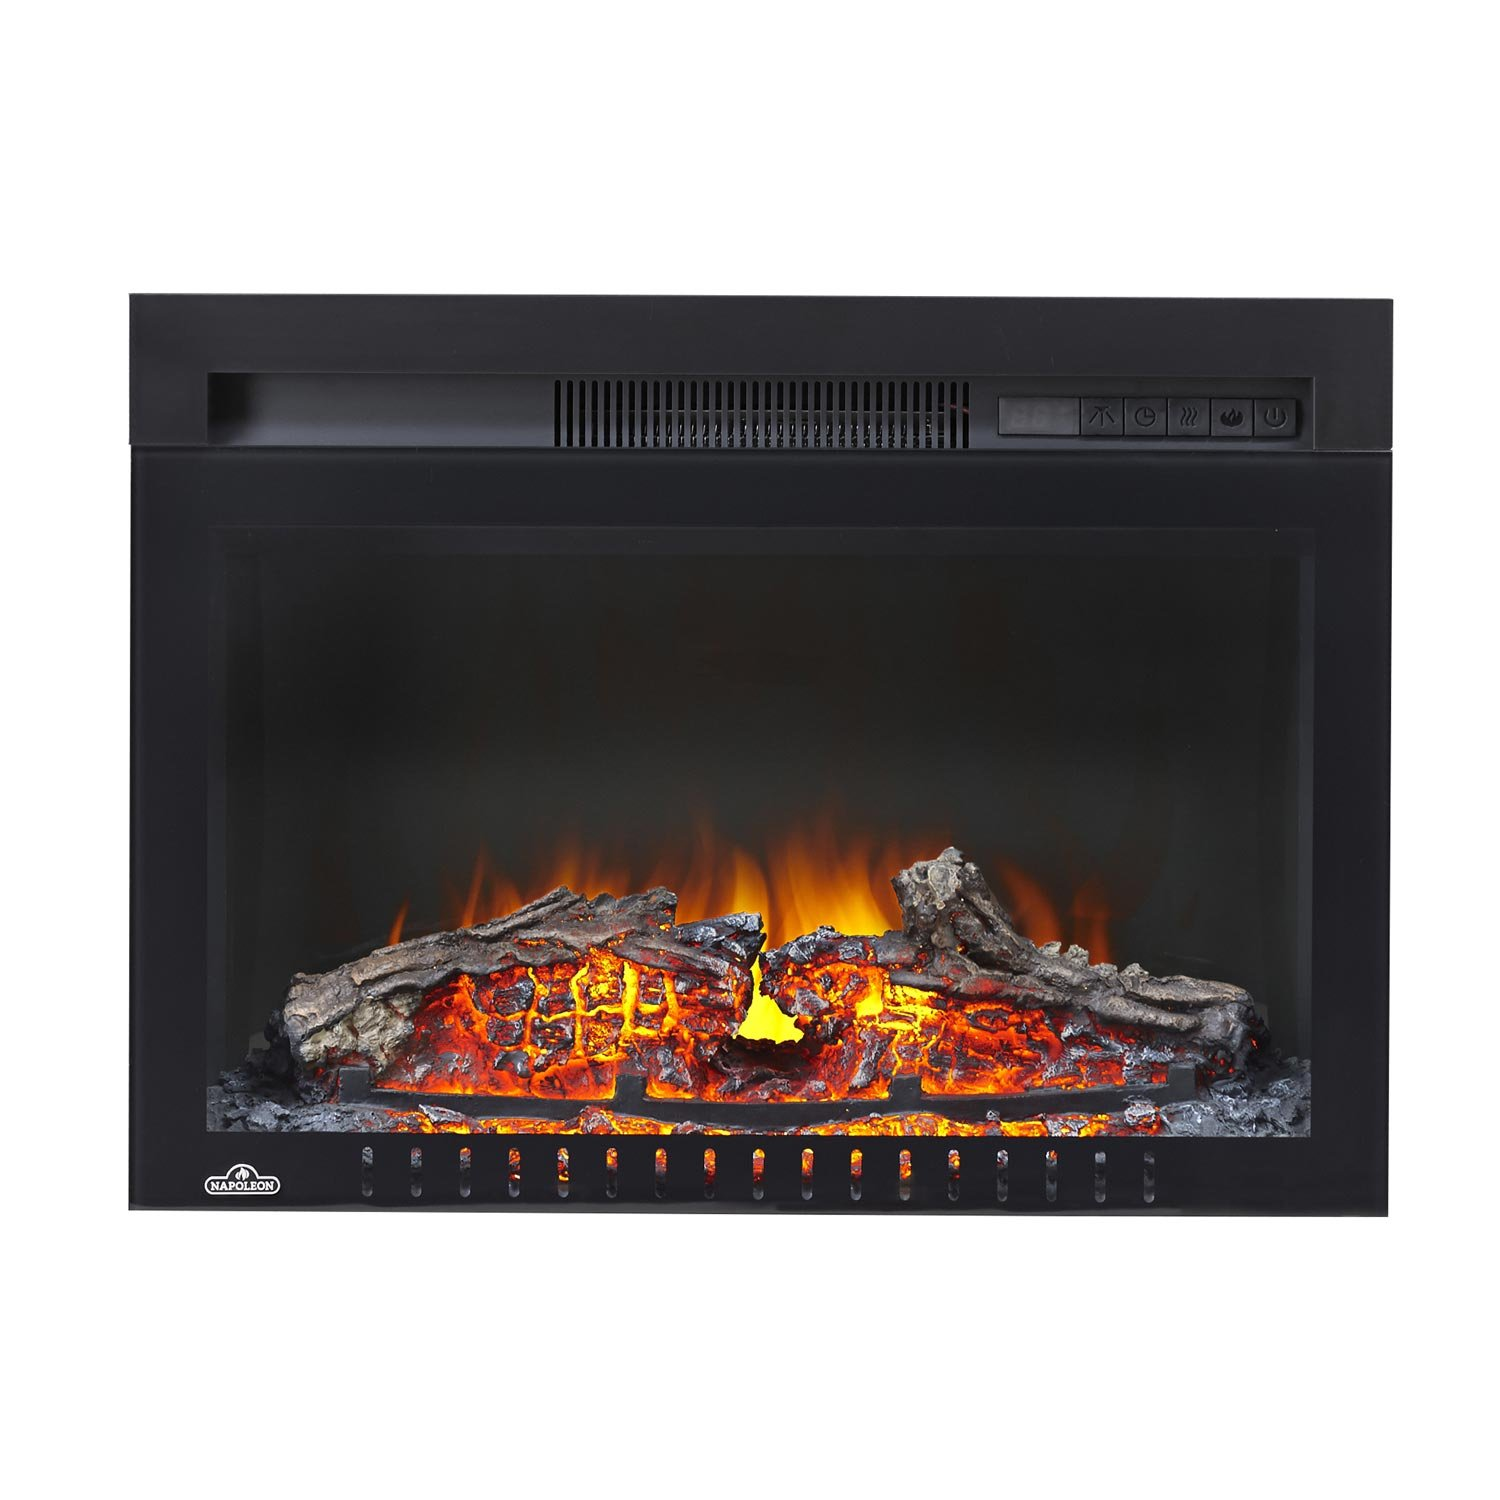 Napoleon Nefb24hg 3a Cinema Glass Series Built In Electric Fireplace 24 Inch